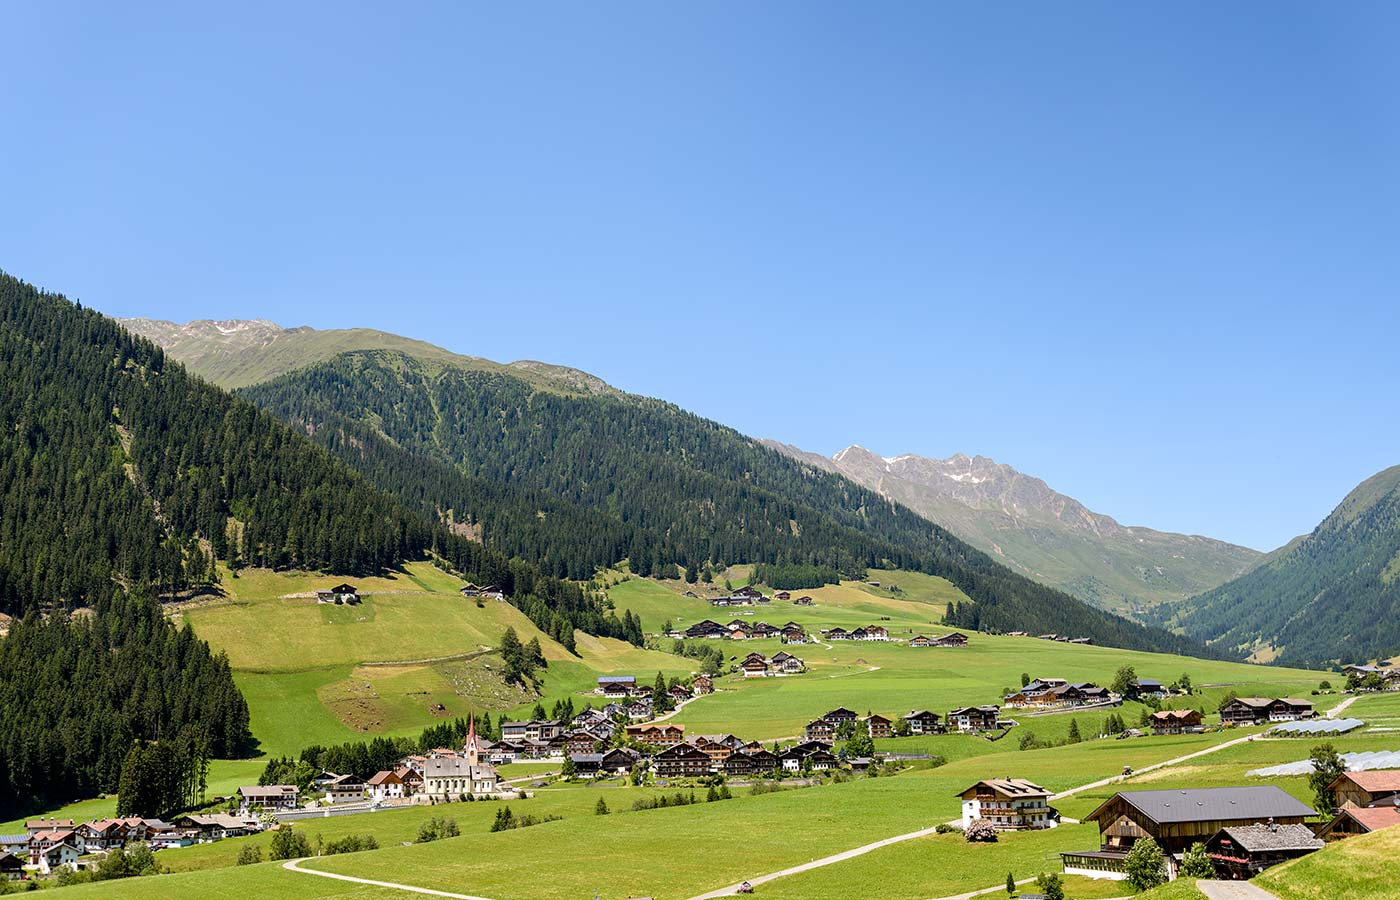 Panoramic view of Val Casies in South Tyrol, Italy, in a summer day